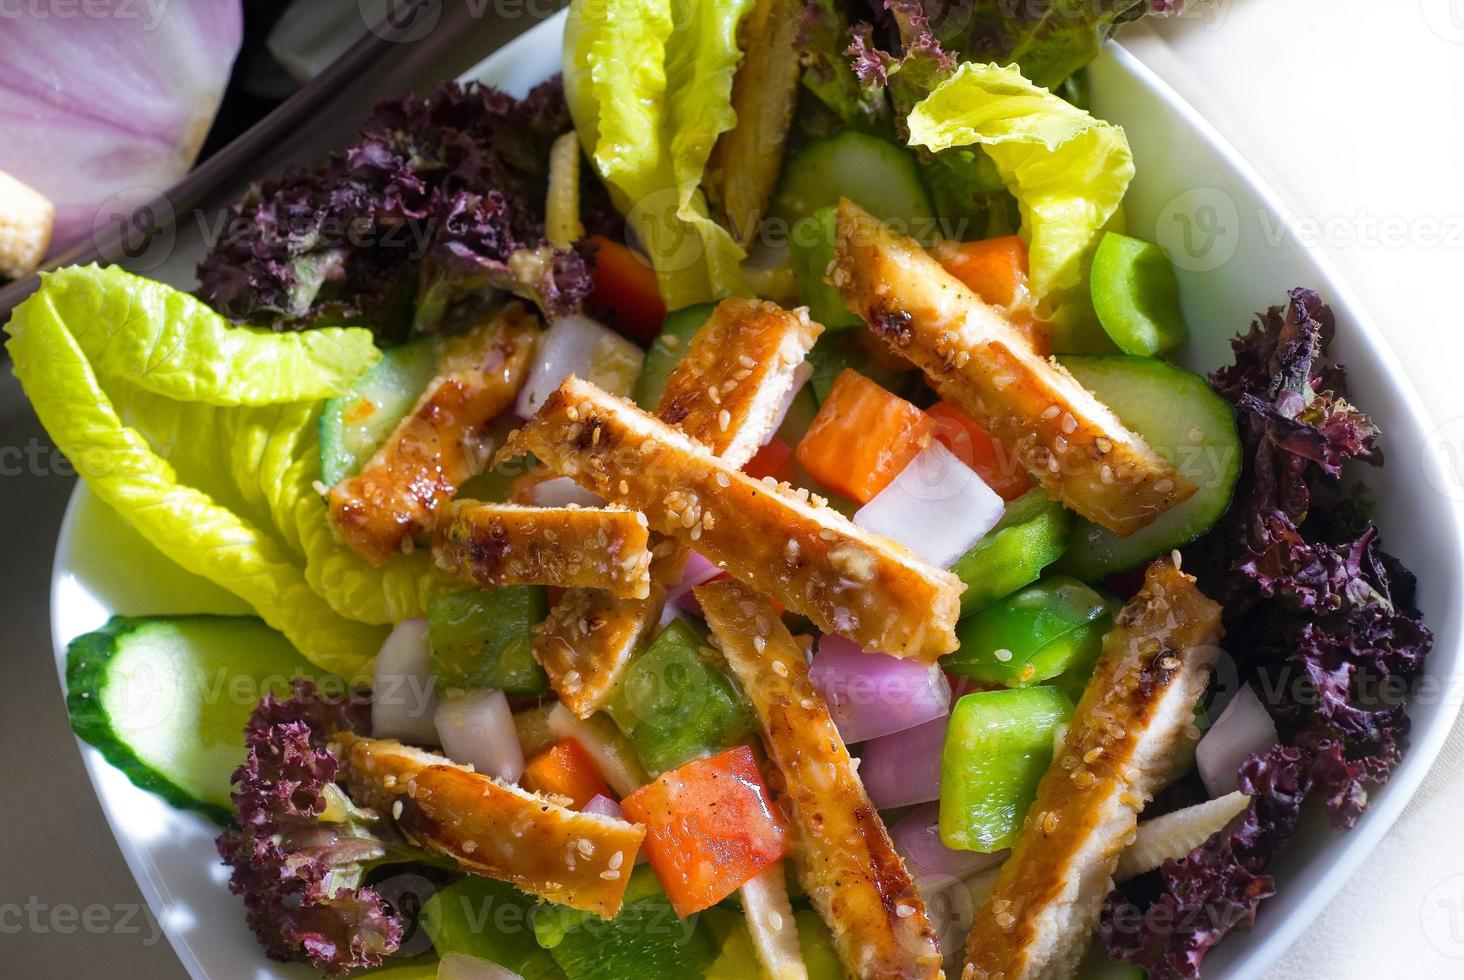 sesame chicken salad photo